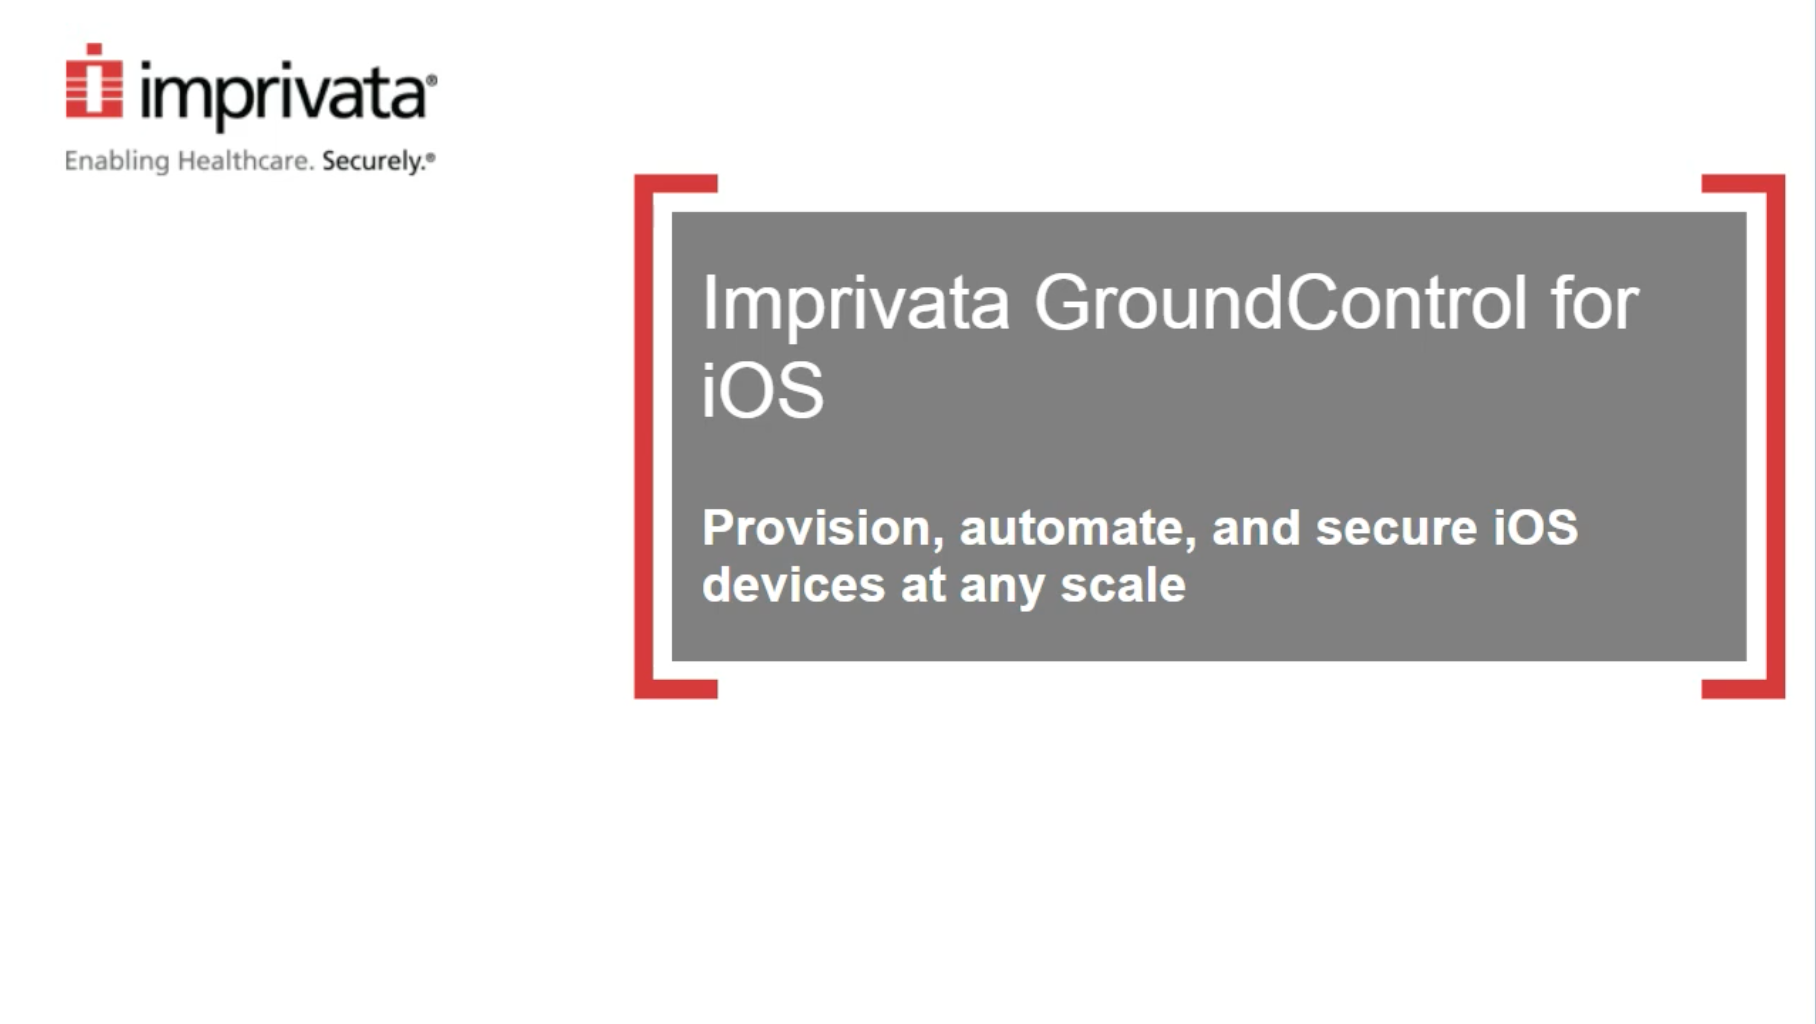 imprivata-groundcontrol-ios